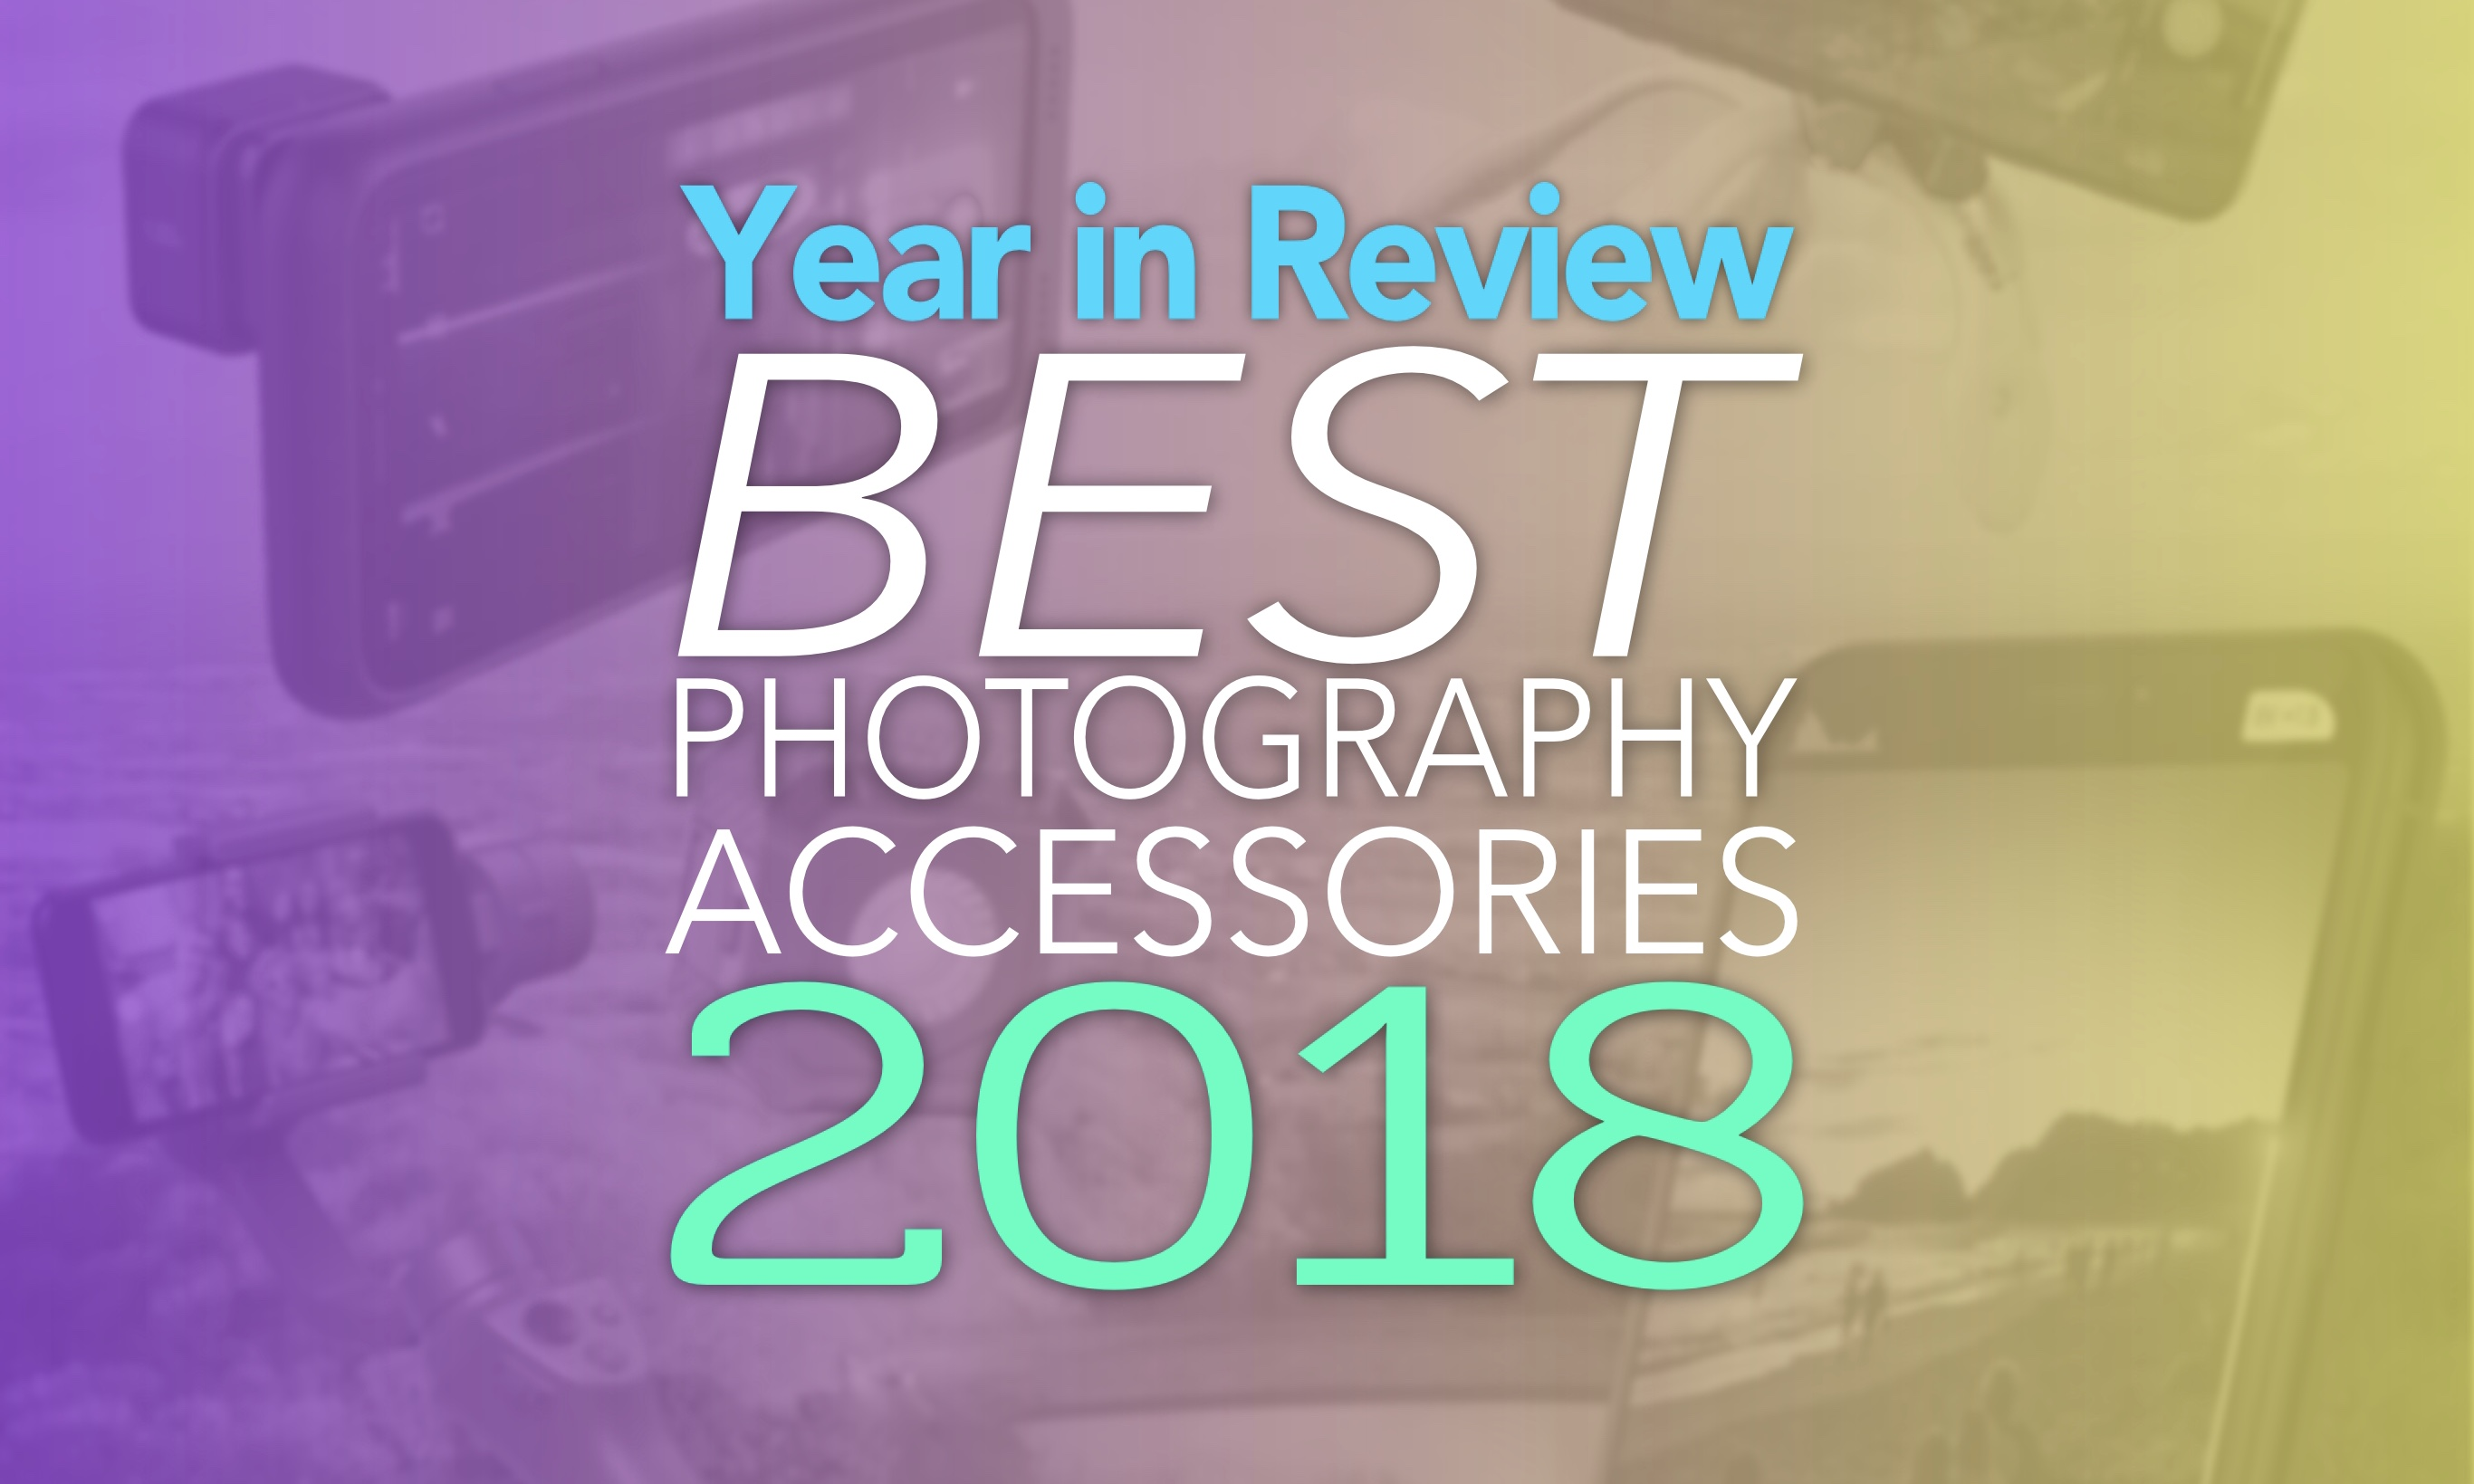 Year in Review Best iPhone Photography Accessories